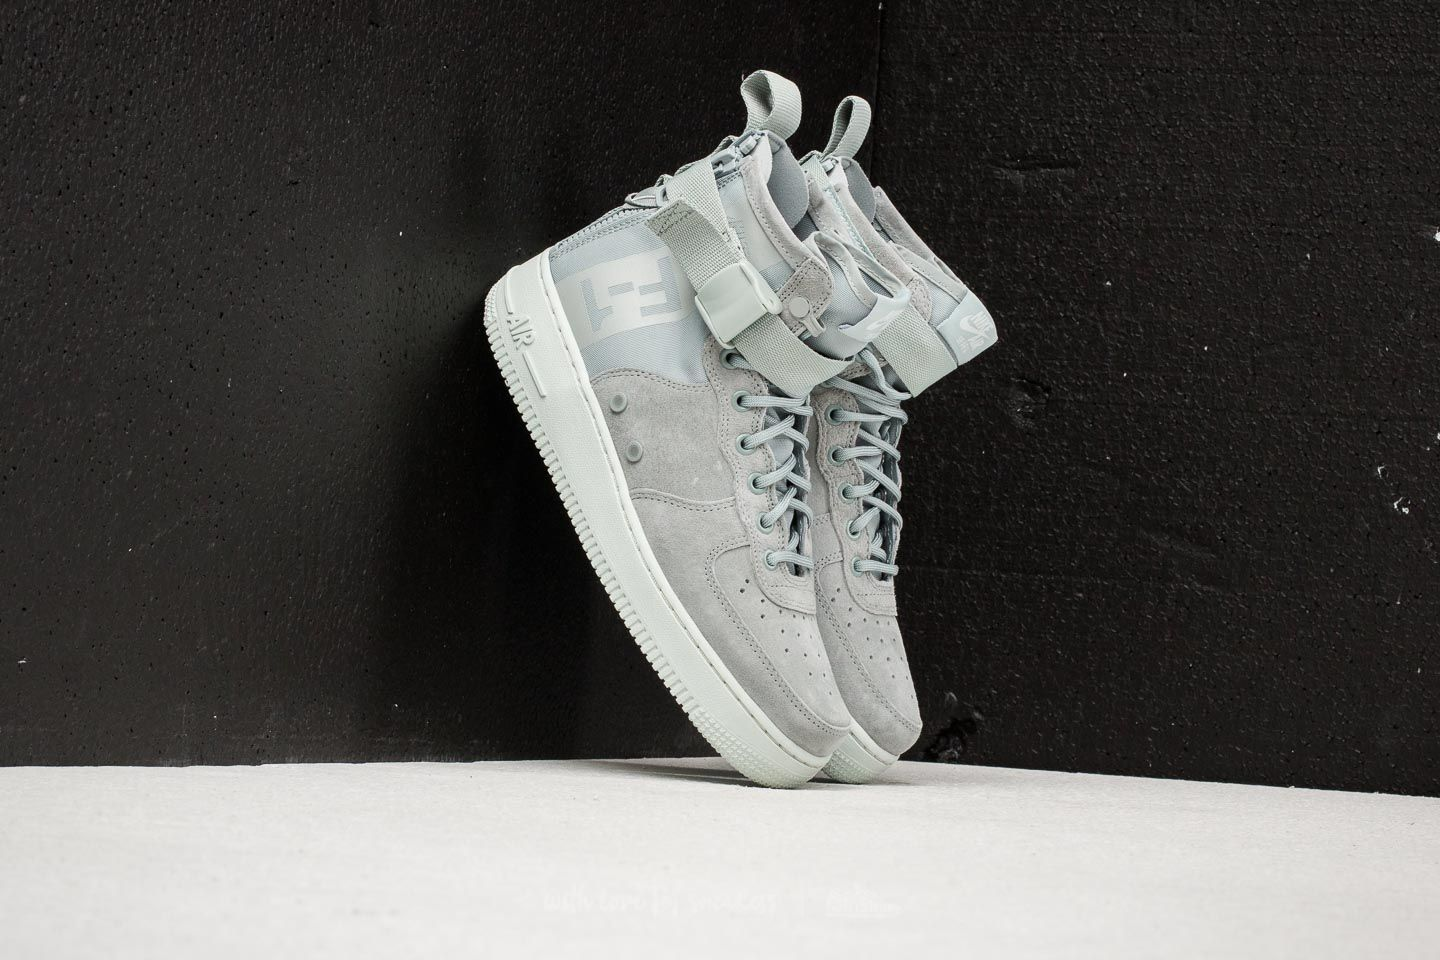 aee4e8c64437 Nike SF Air Force 1 MID W Light Pumice  Light Pumice